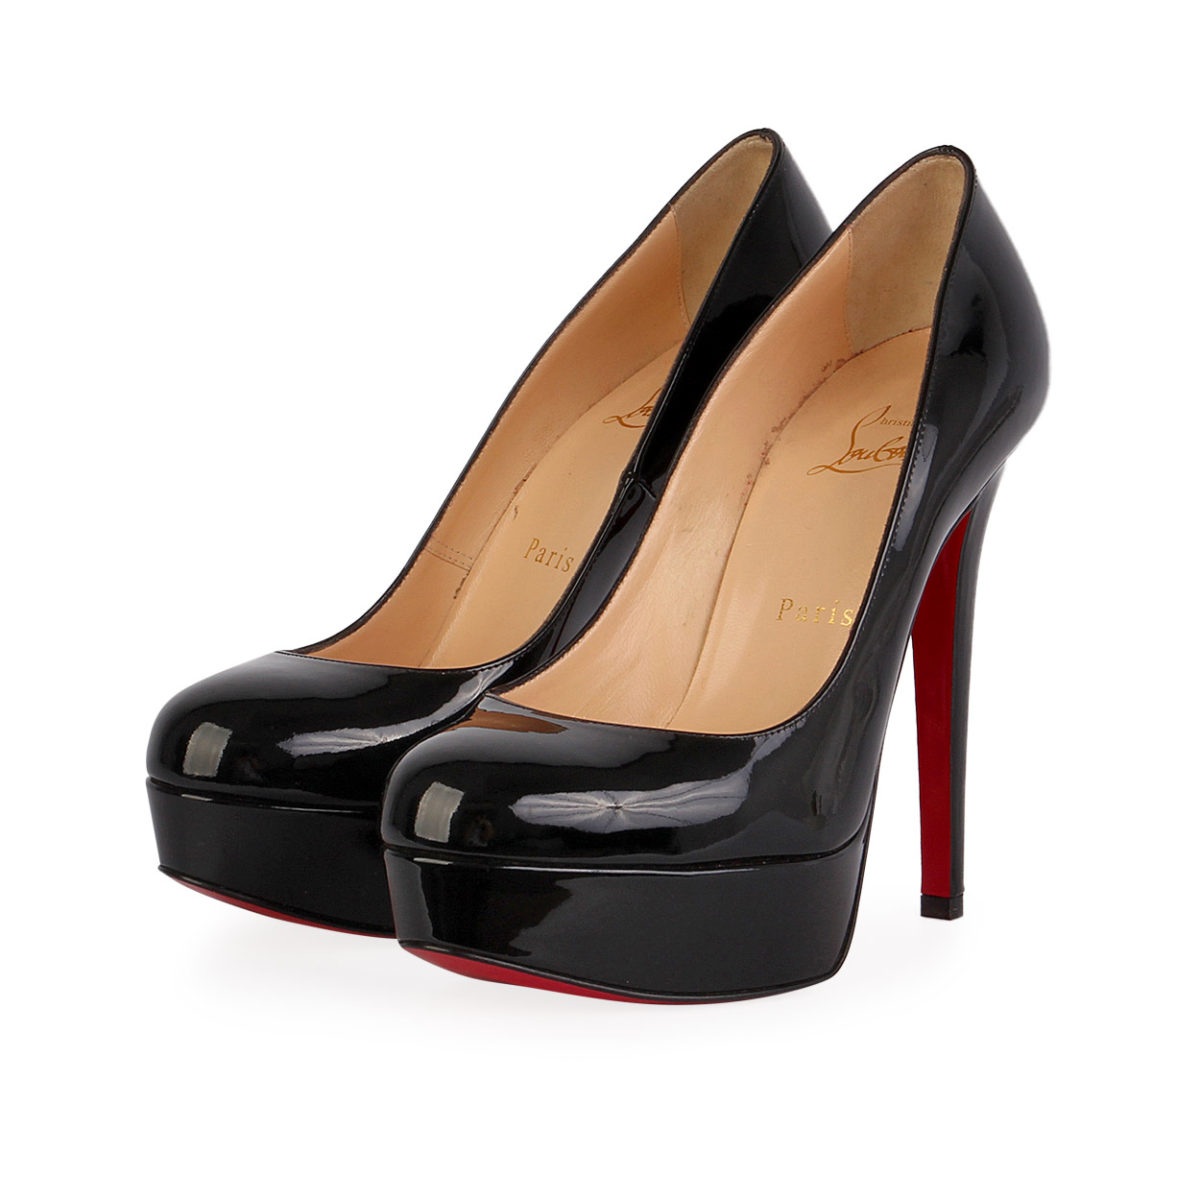 73b71f7f242 CHRISTIAN LOUBOUTIN Patent Leather Bianca 120 Pumps Black - S: 36.5 (3.5)